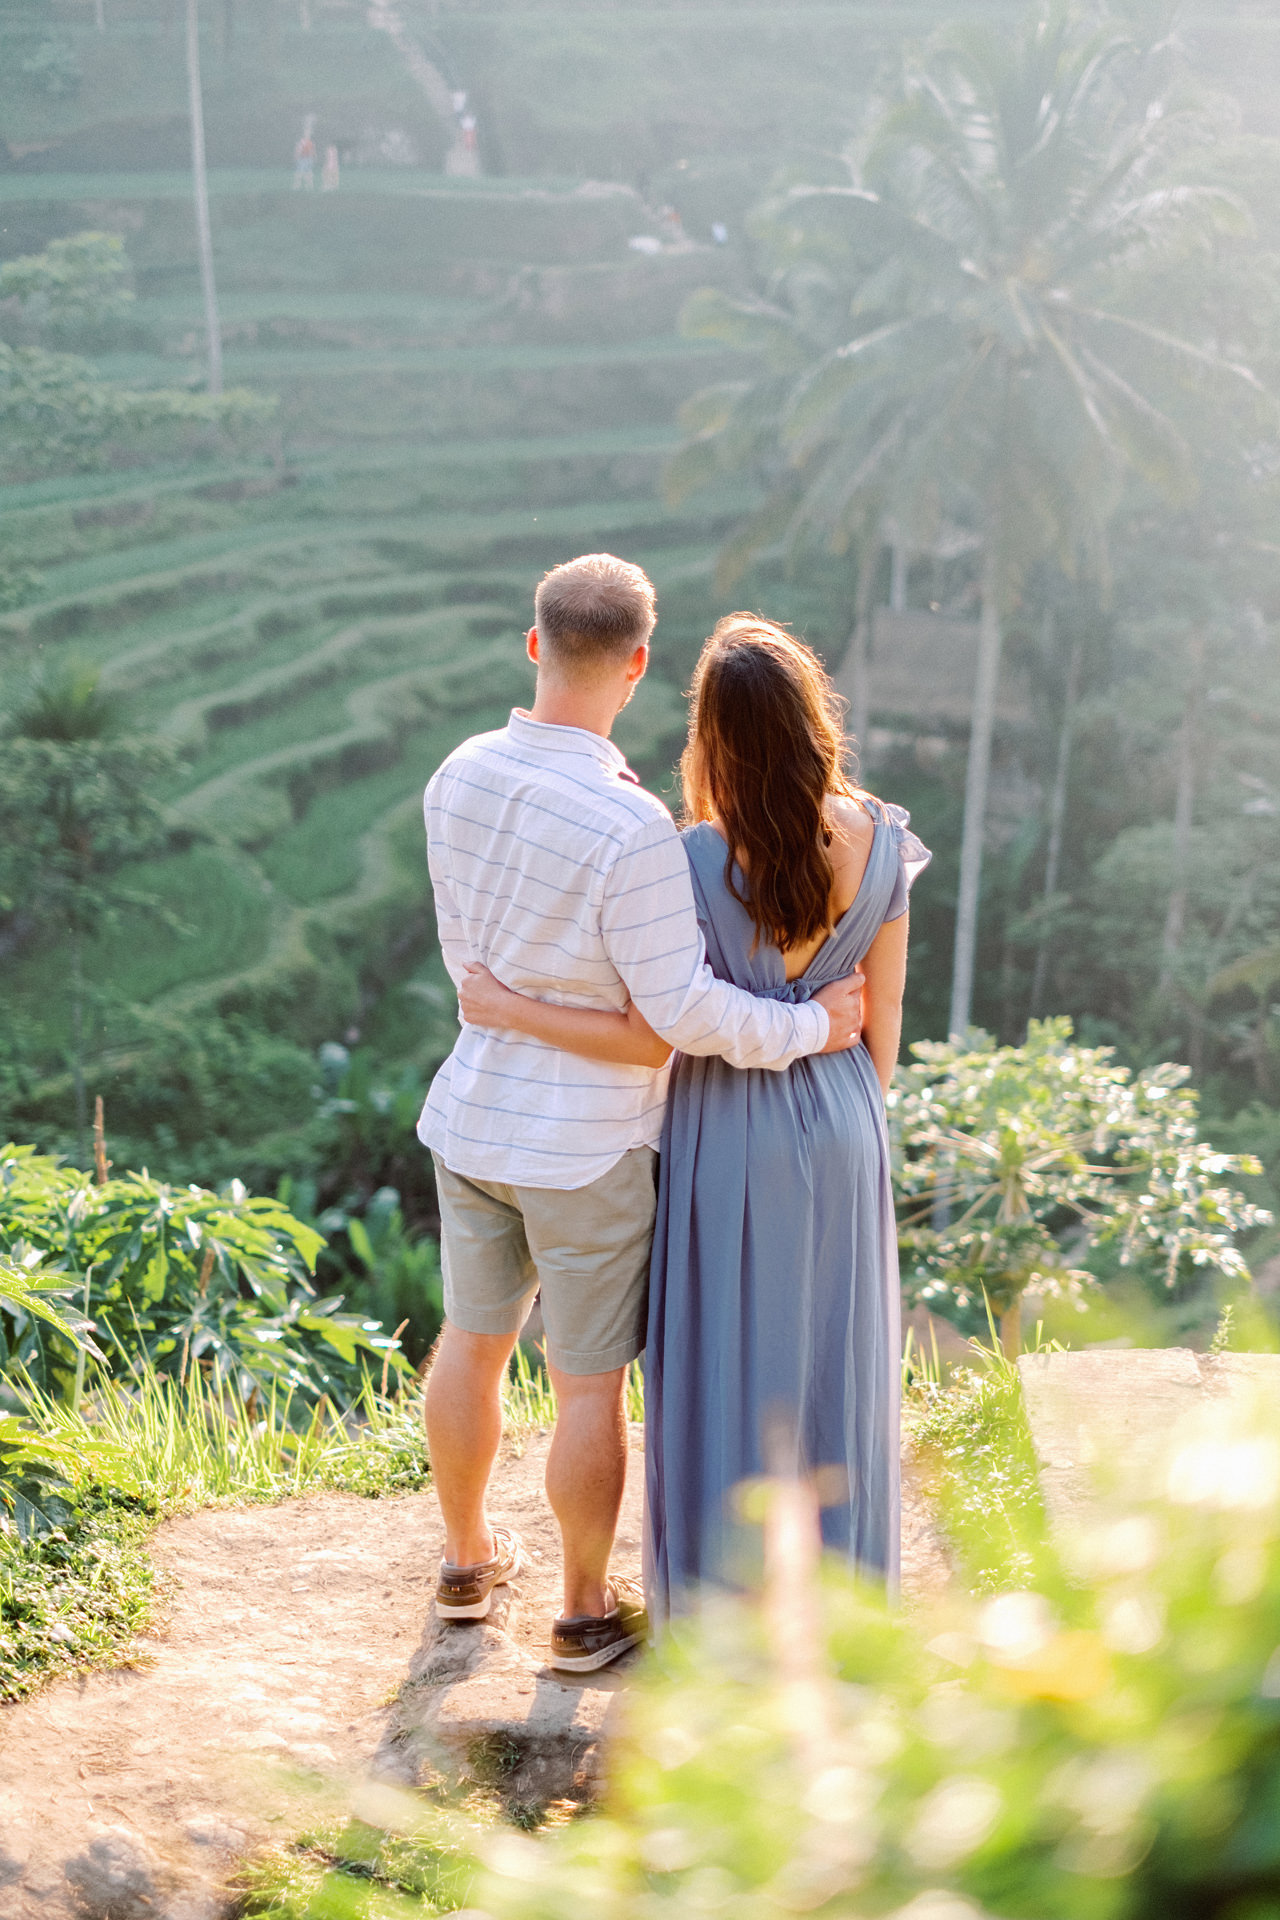 A&M: Tegalalang Rice Terraces Honeymoon Photography 2